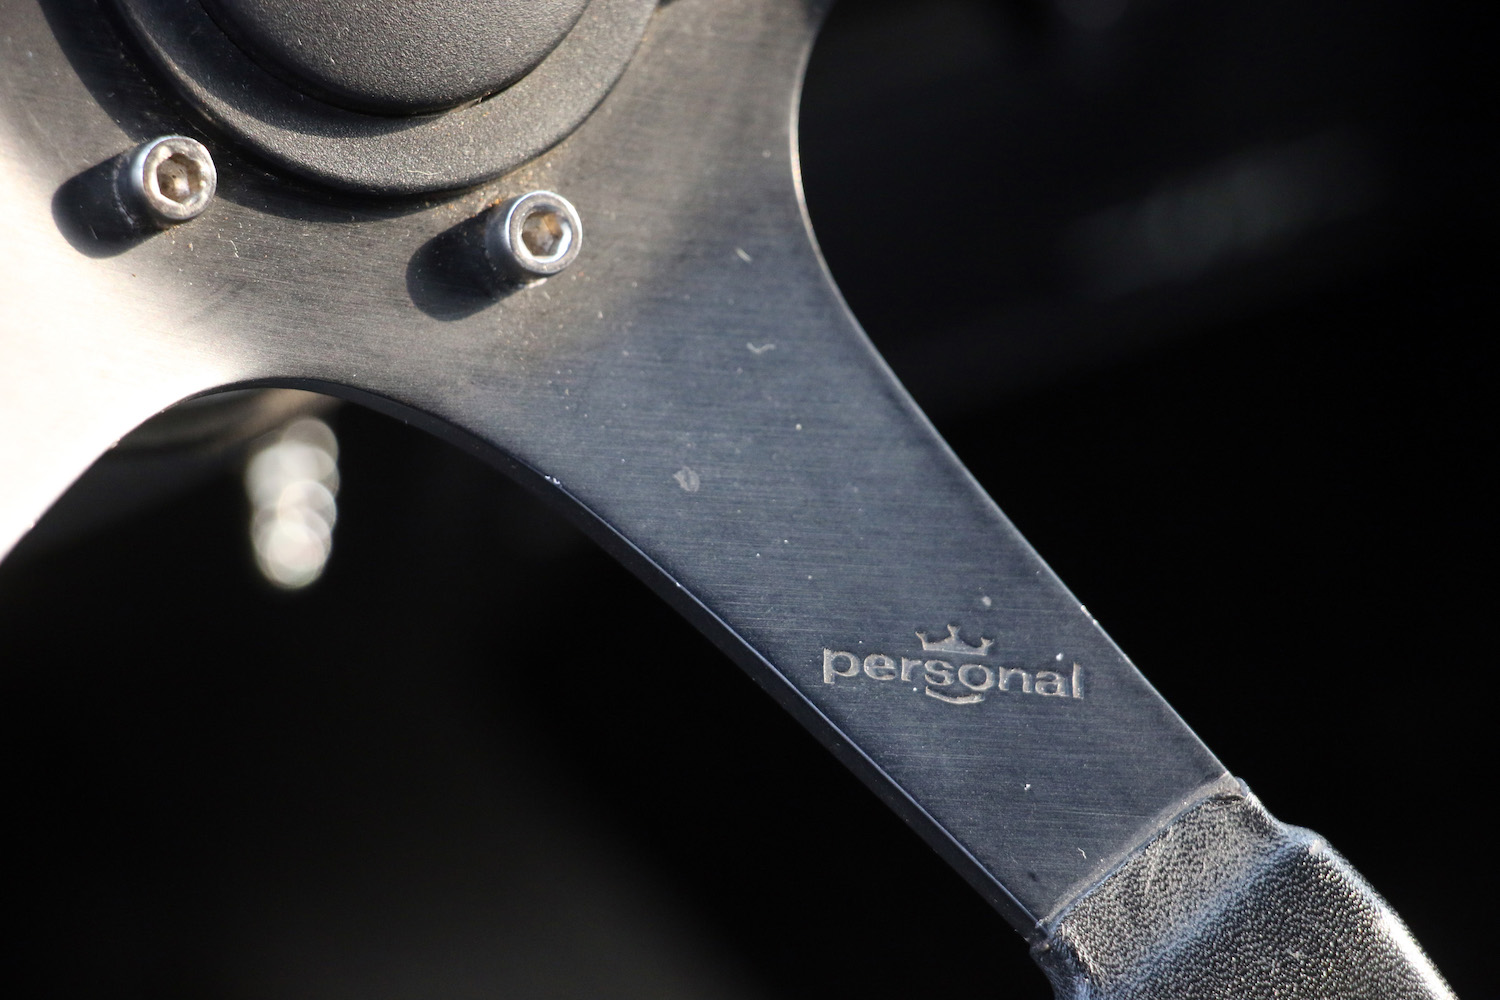 personal steering wheel brand etching close up